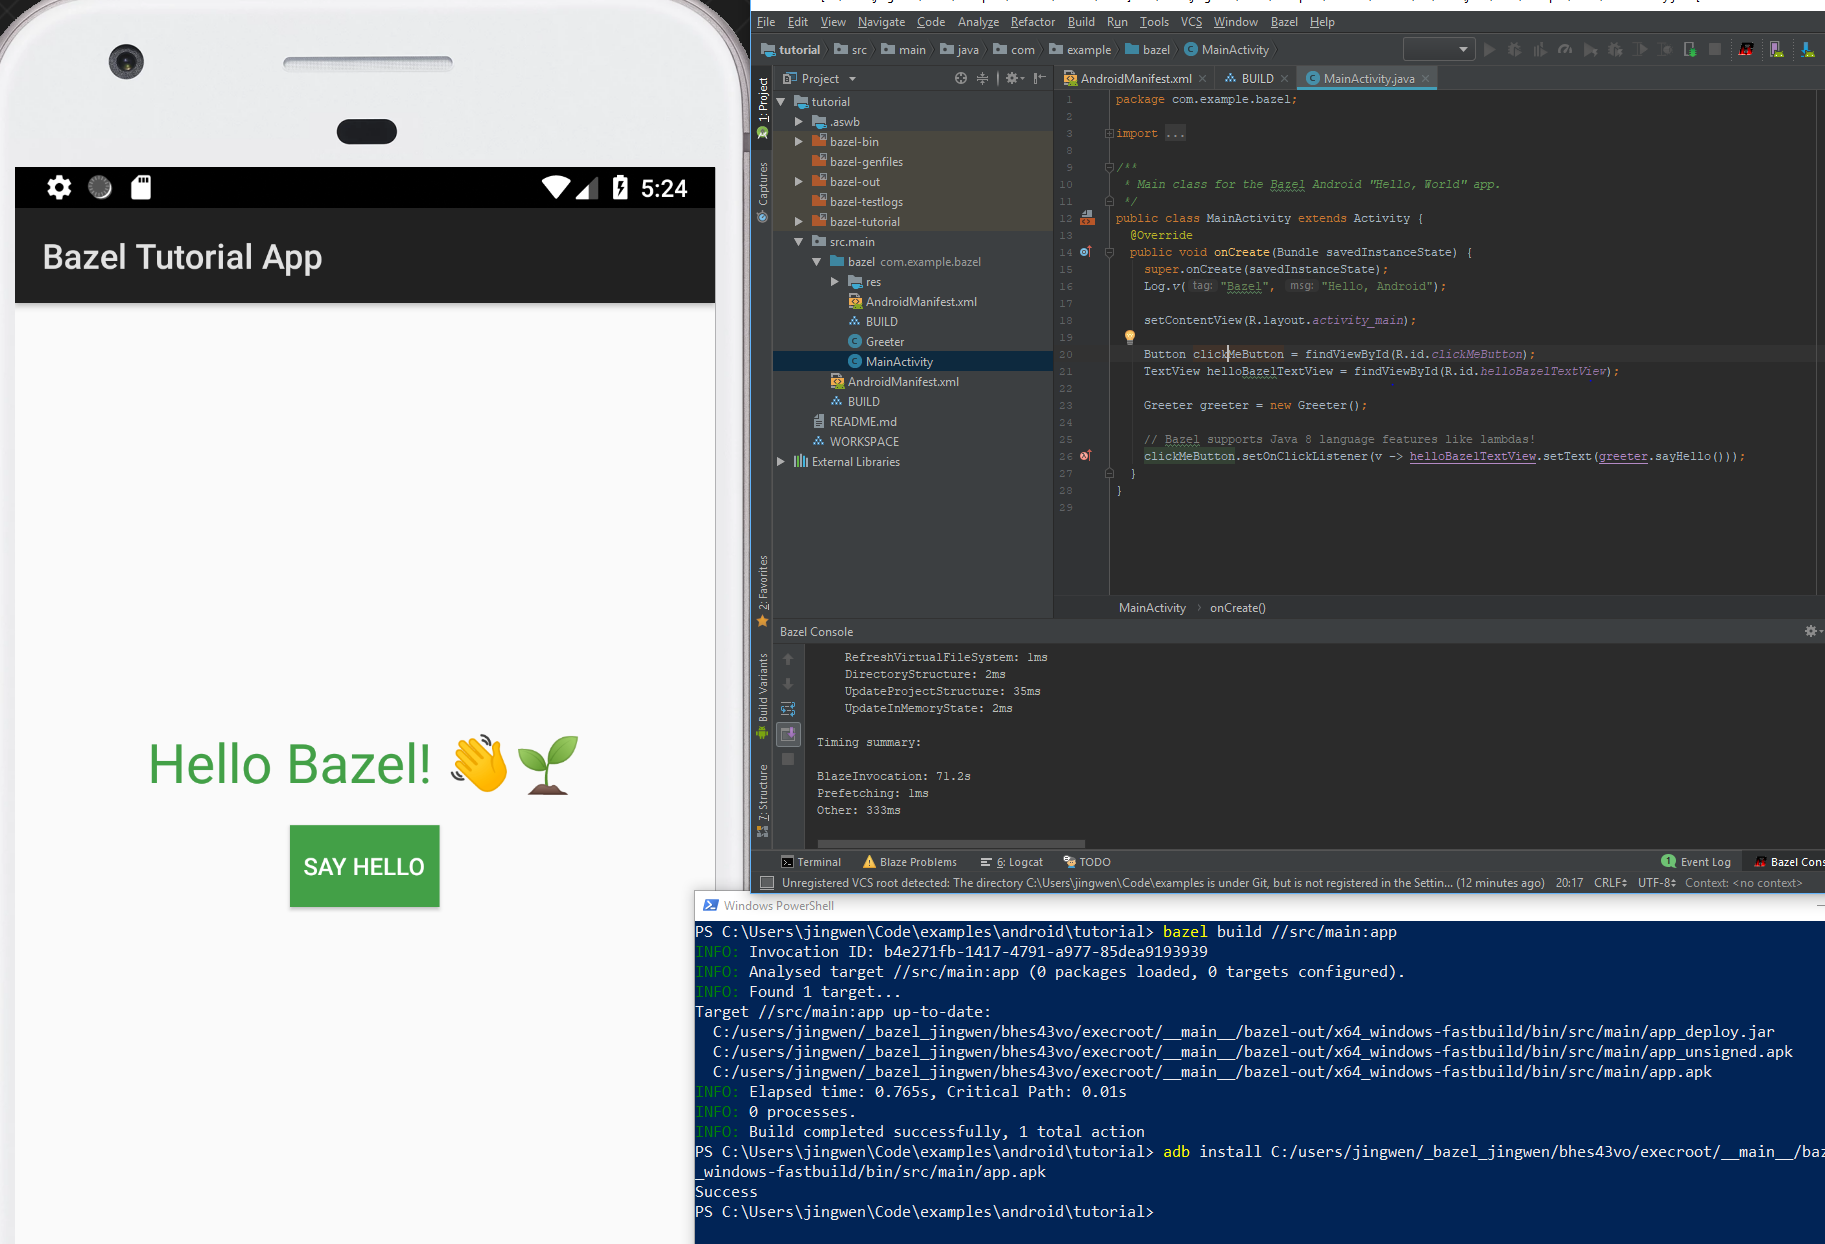 Windows,Android: Bazel should work with Android Studio on